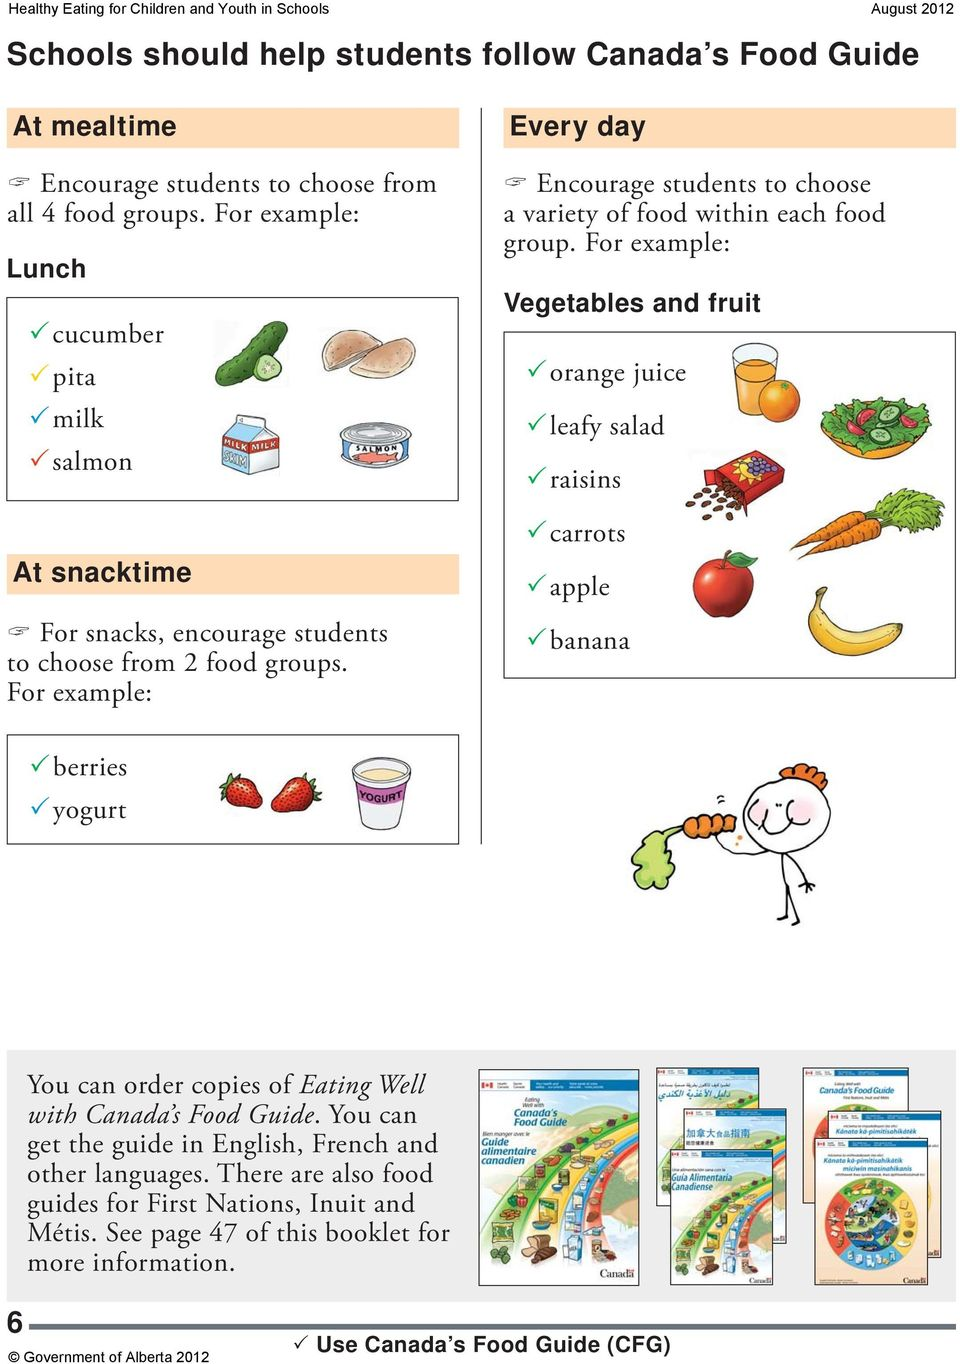 For example: Every day Encourage students to choose a variety of food within each food group.